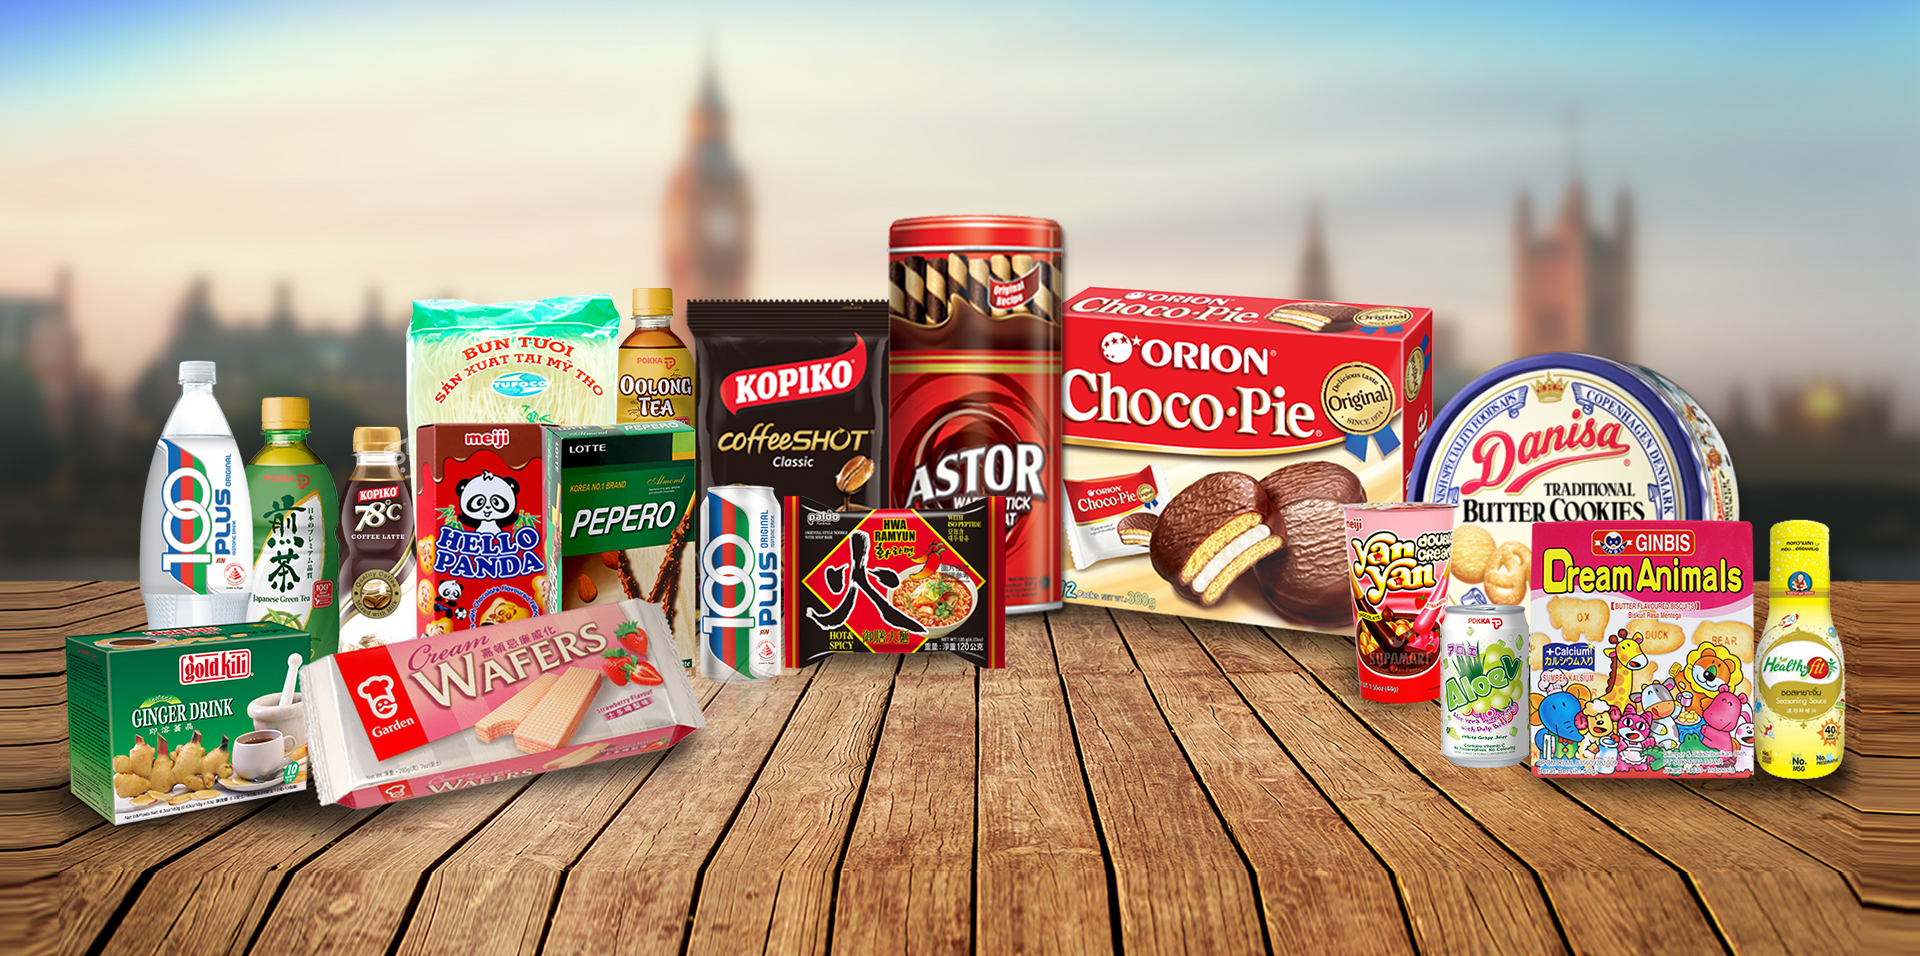 Our Brands - Bringing the world's favourite treats to Europe